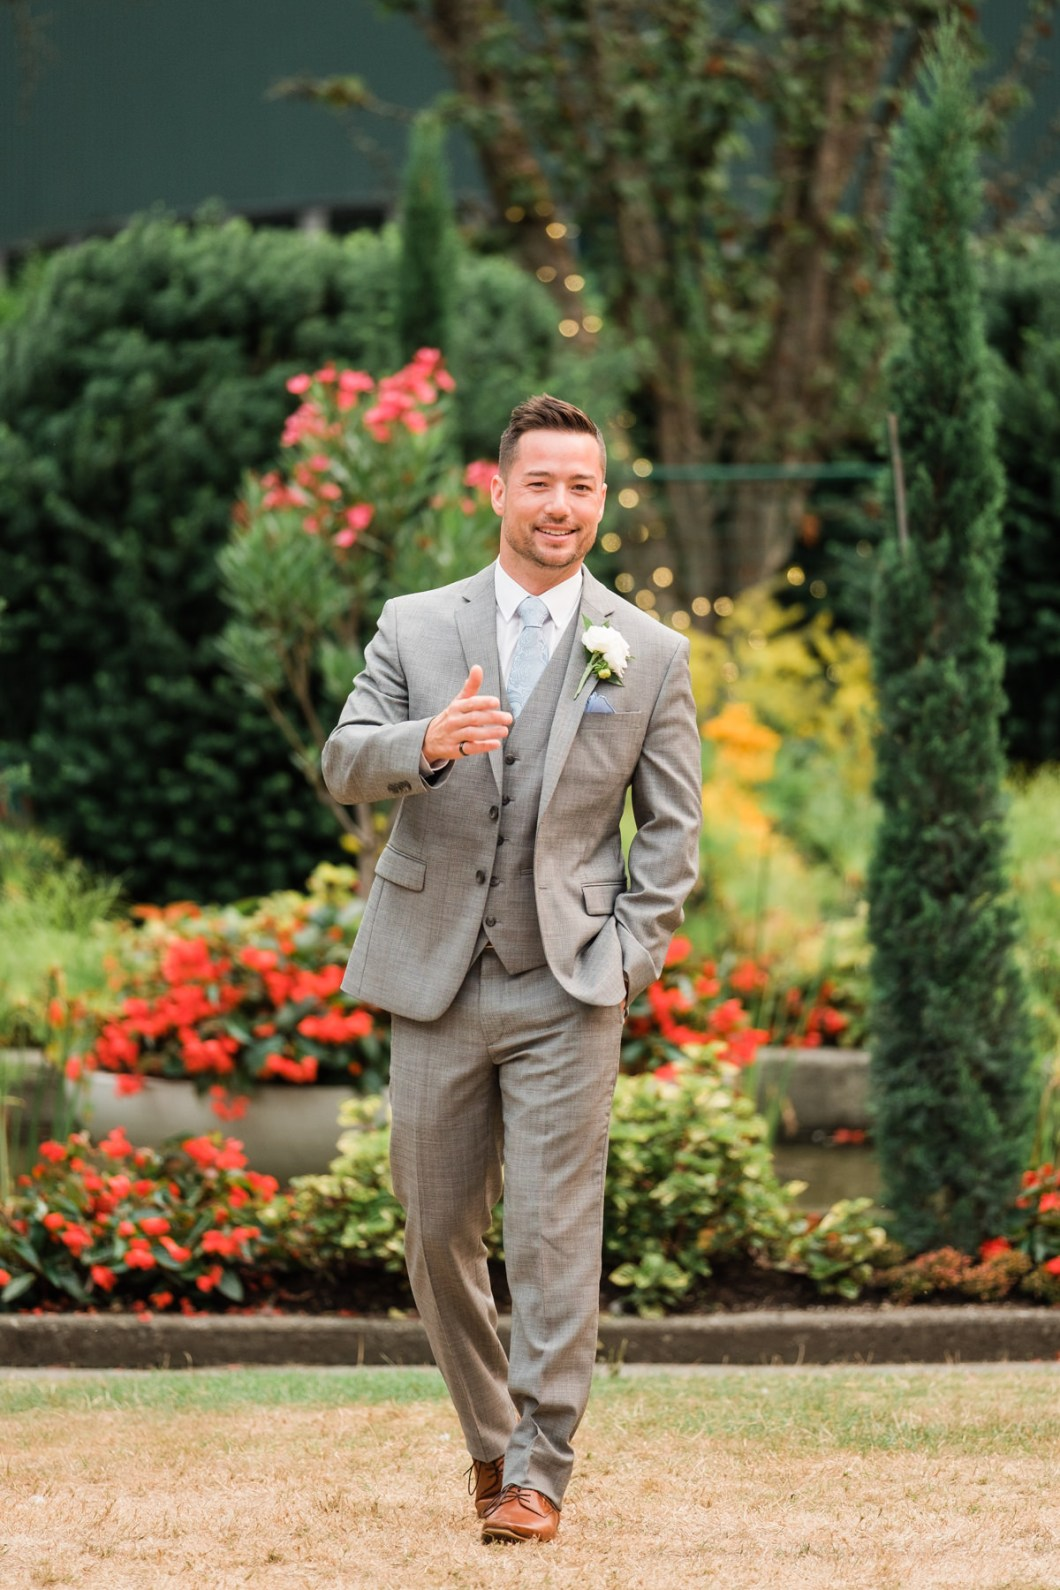 Stanley Park Pavilion wedding groom